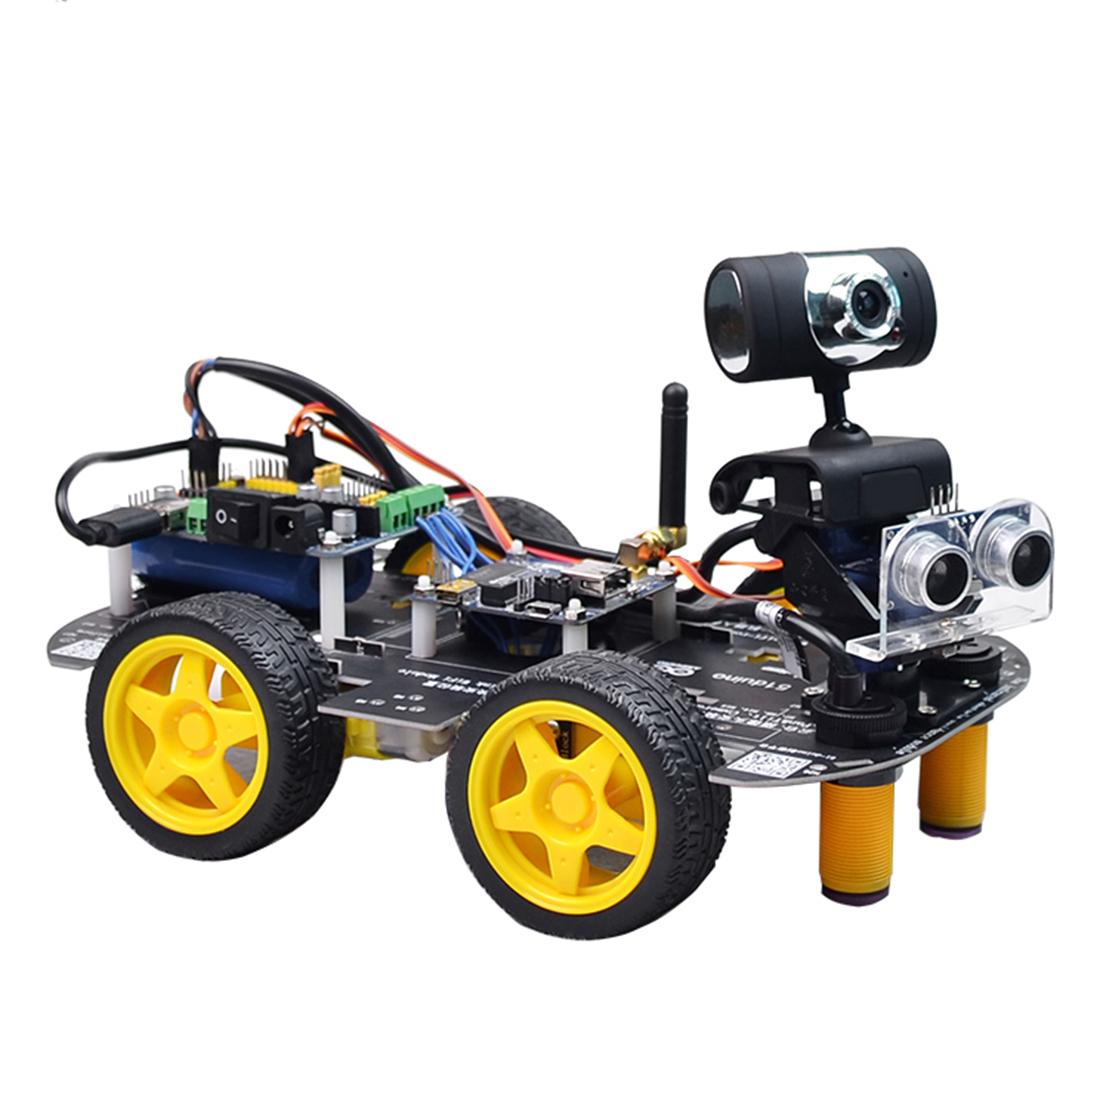 DIY Programmable Robot Wifi Steam Educational Car With Graphic Programming XR BLOCK Linux For Raspberry Pi 4(2G)- US Plug